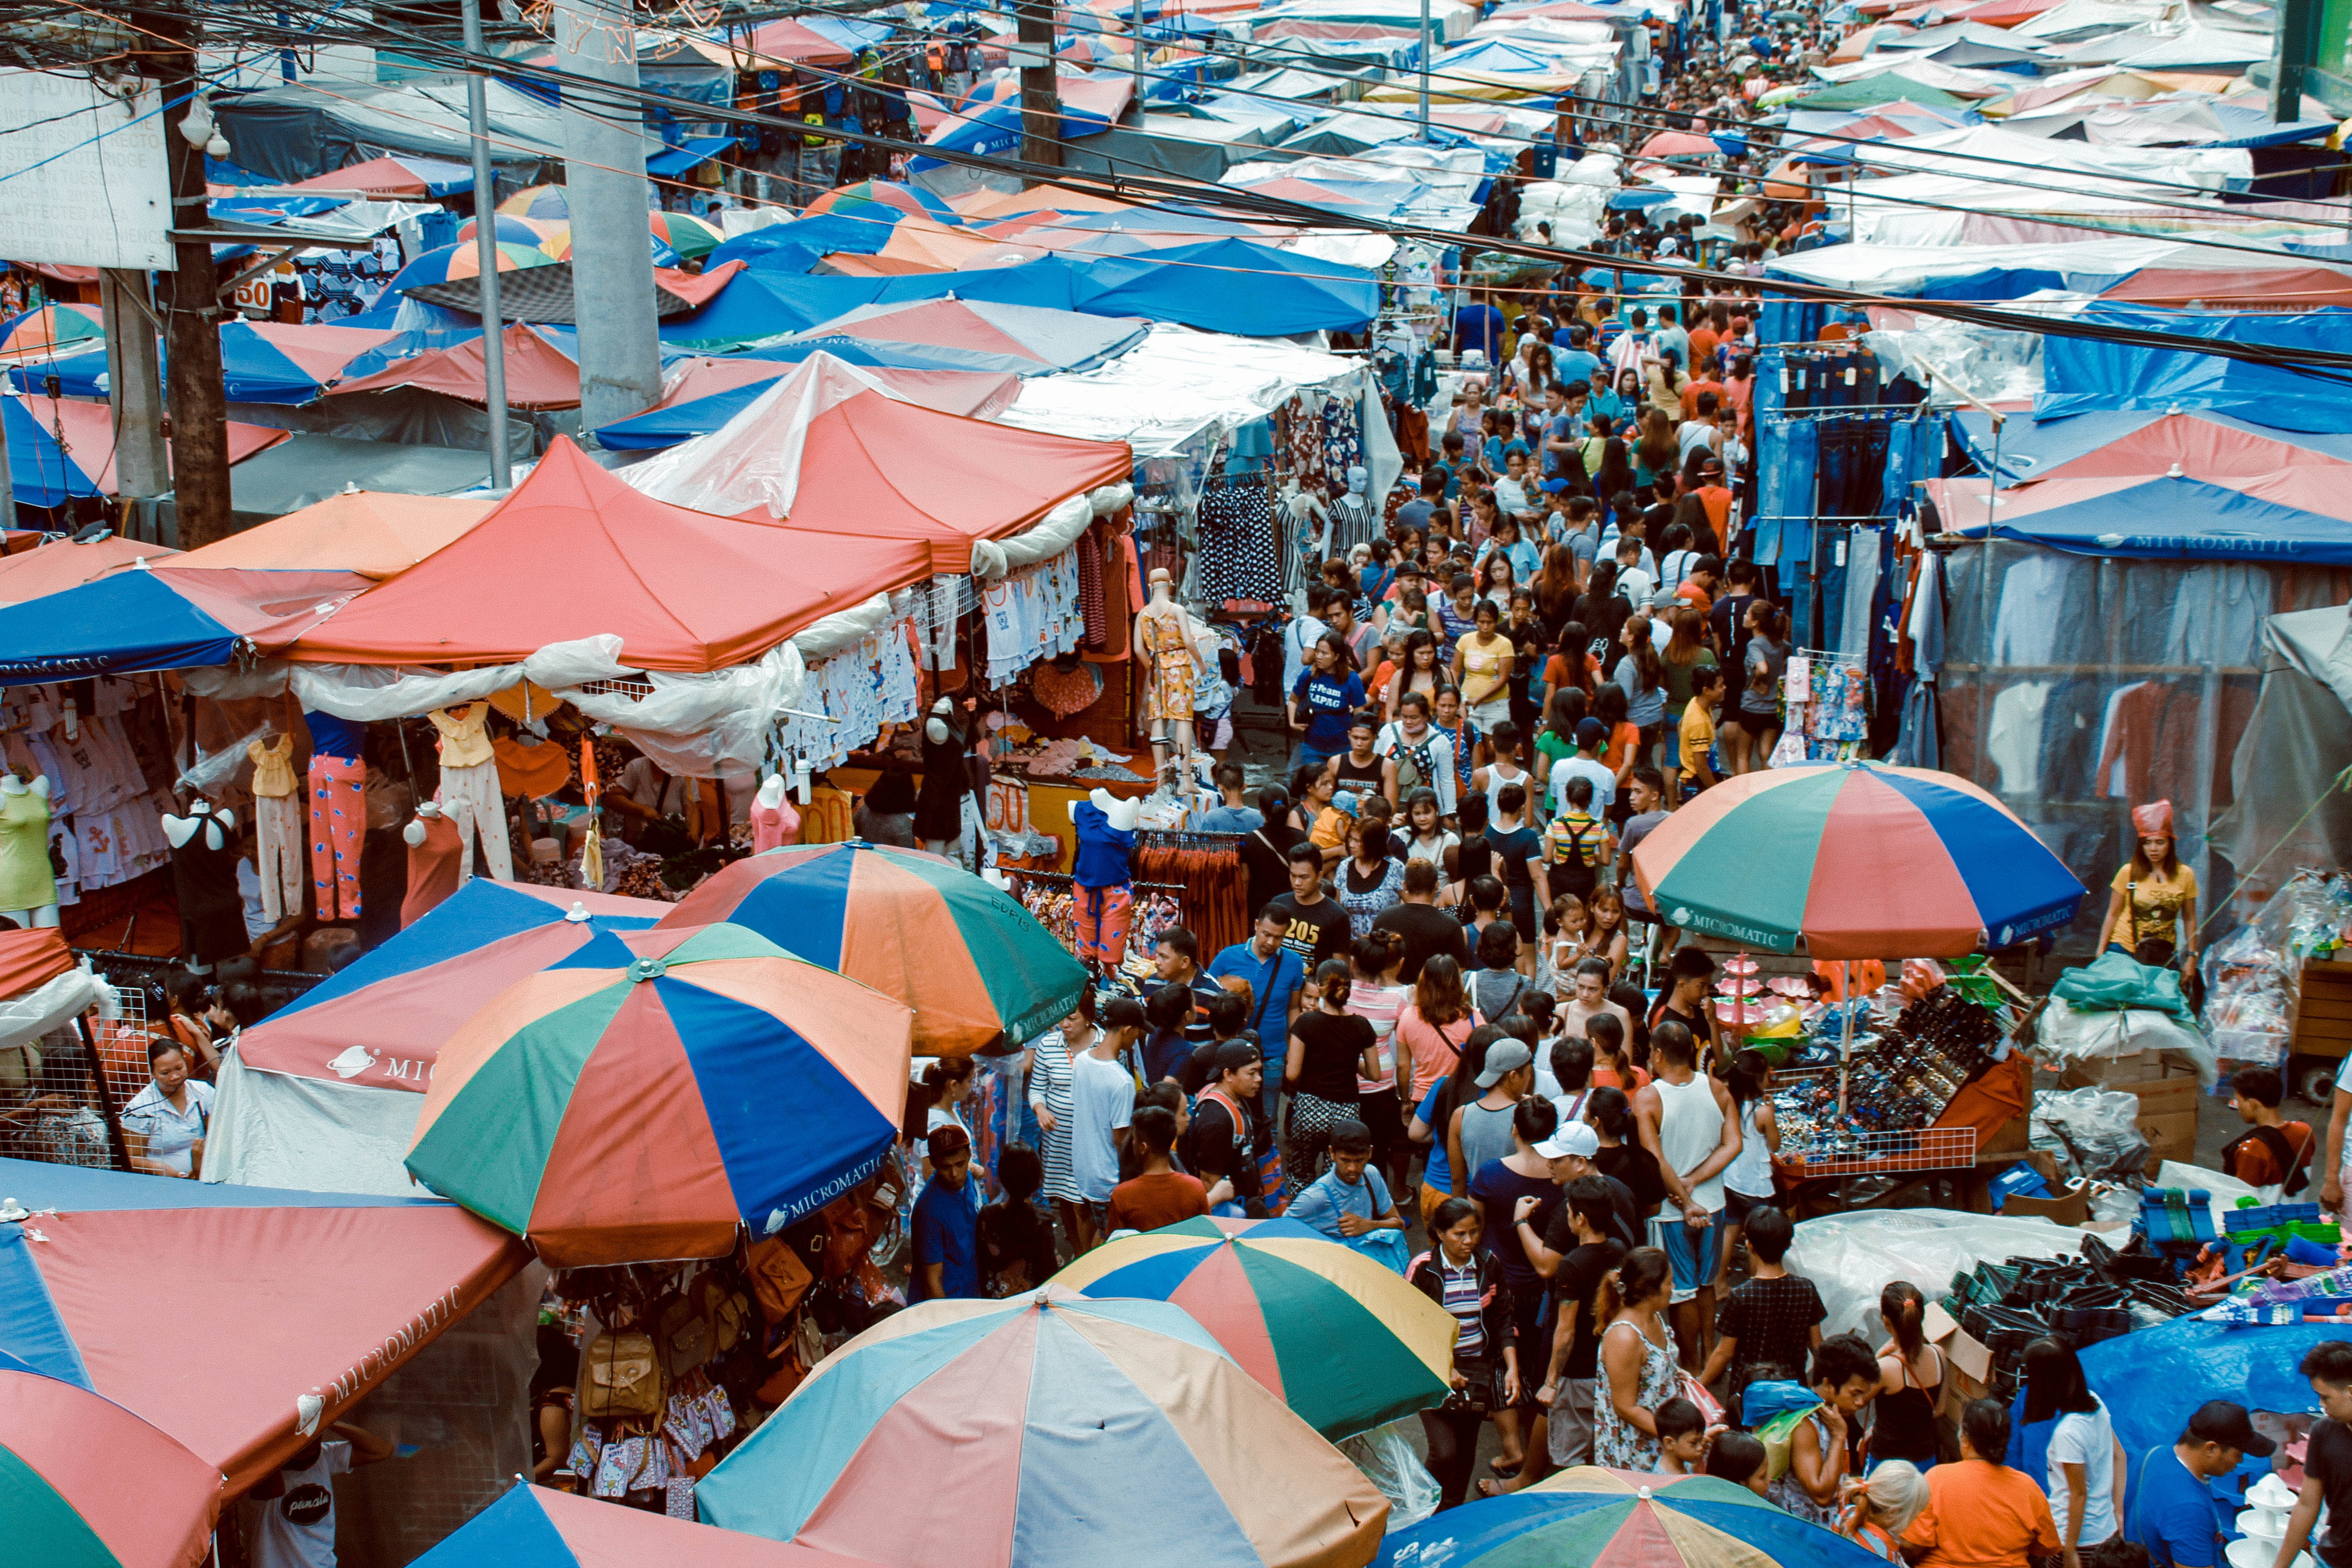 A busy inner-city market filled with fabric structures built by temporary event staff.